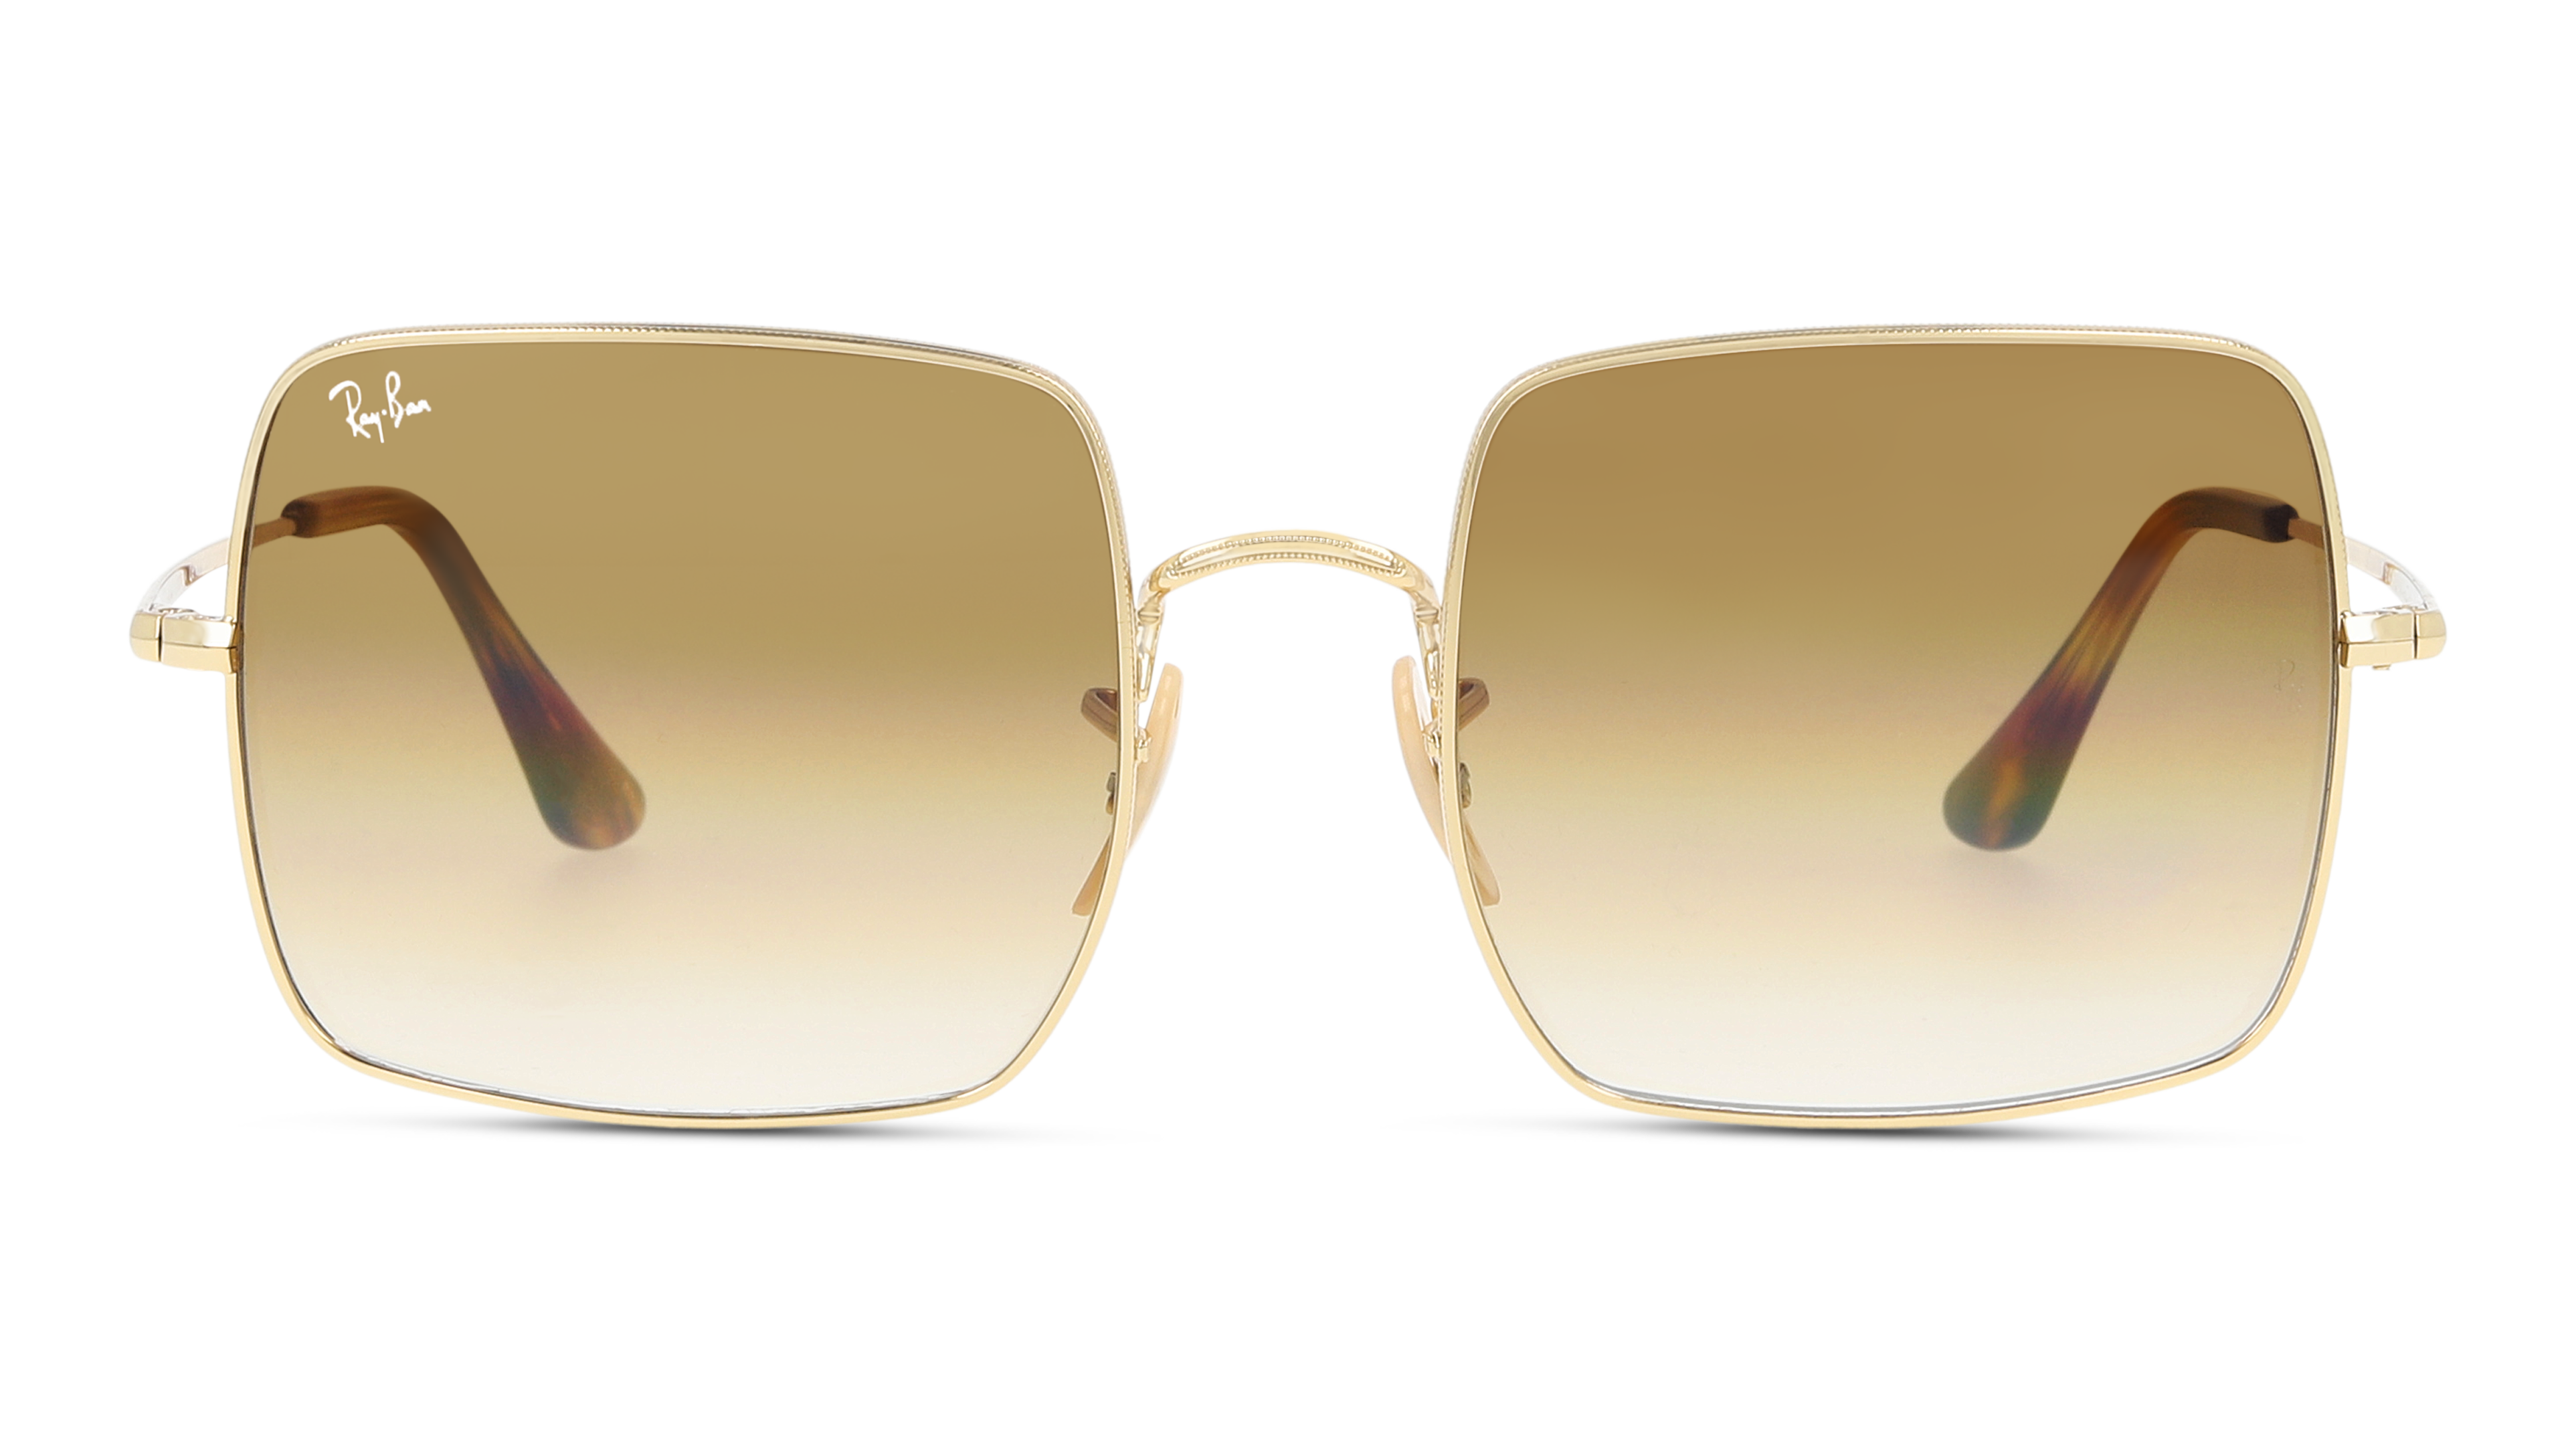 Front Ray-Ban Ray-Ban 0RB1971 914751 54/19 Goud/Bruin